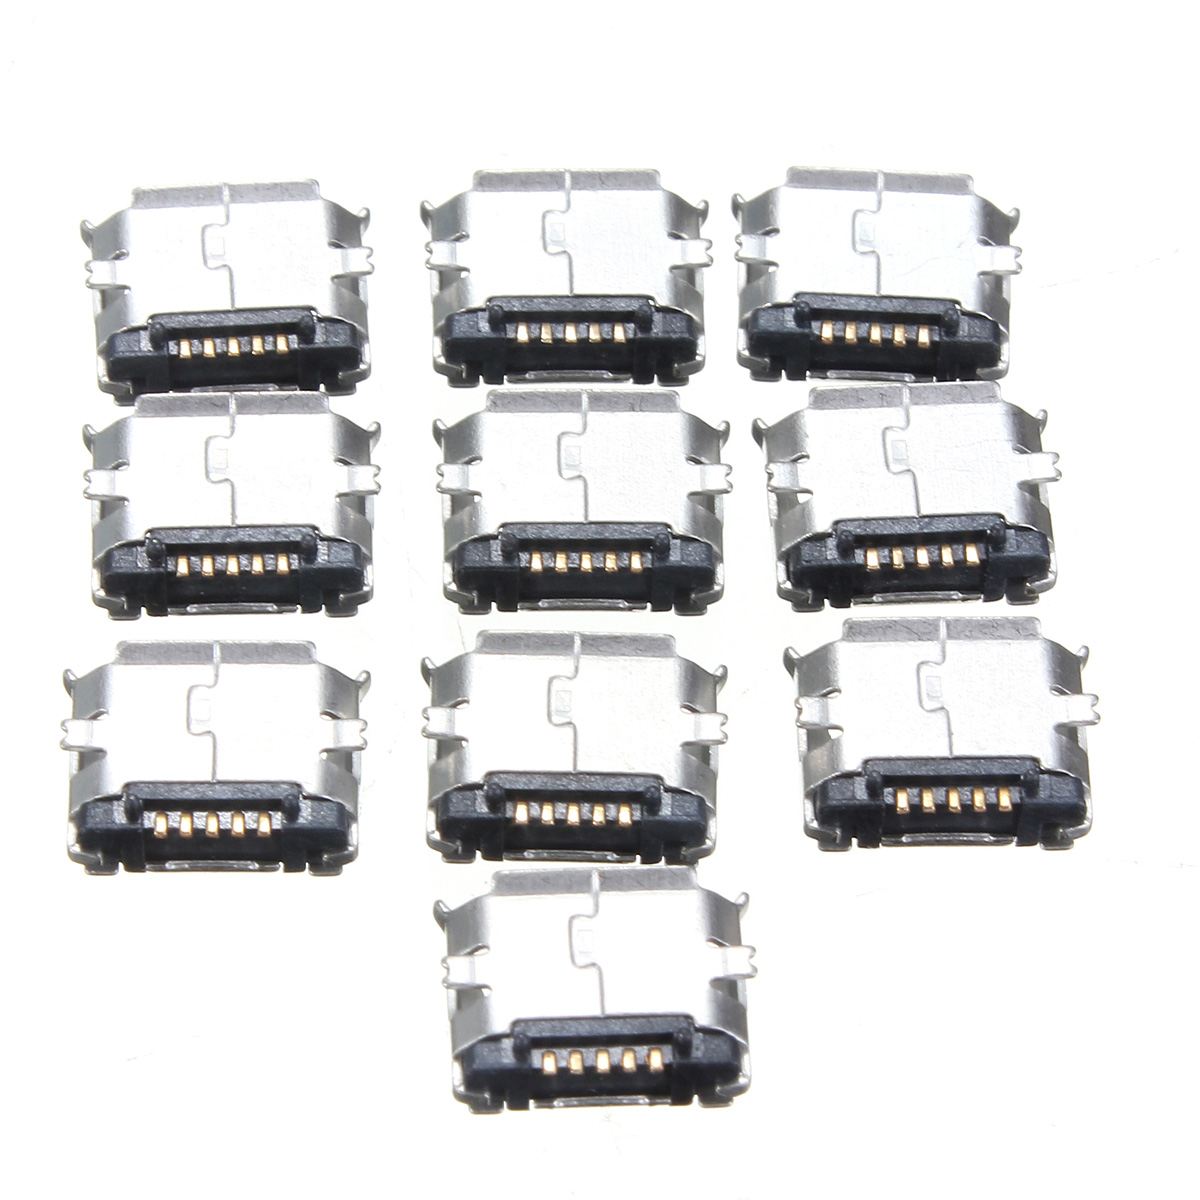 New 10pcs Usb Type B 90 Degrees Dip Female Socket Pcb Solder Connectors 4pins